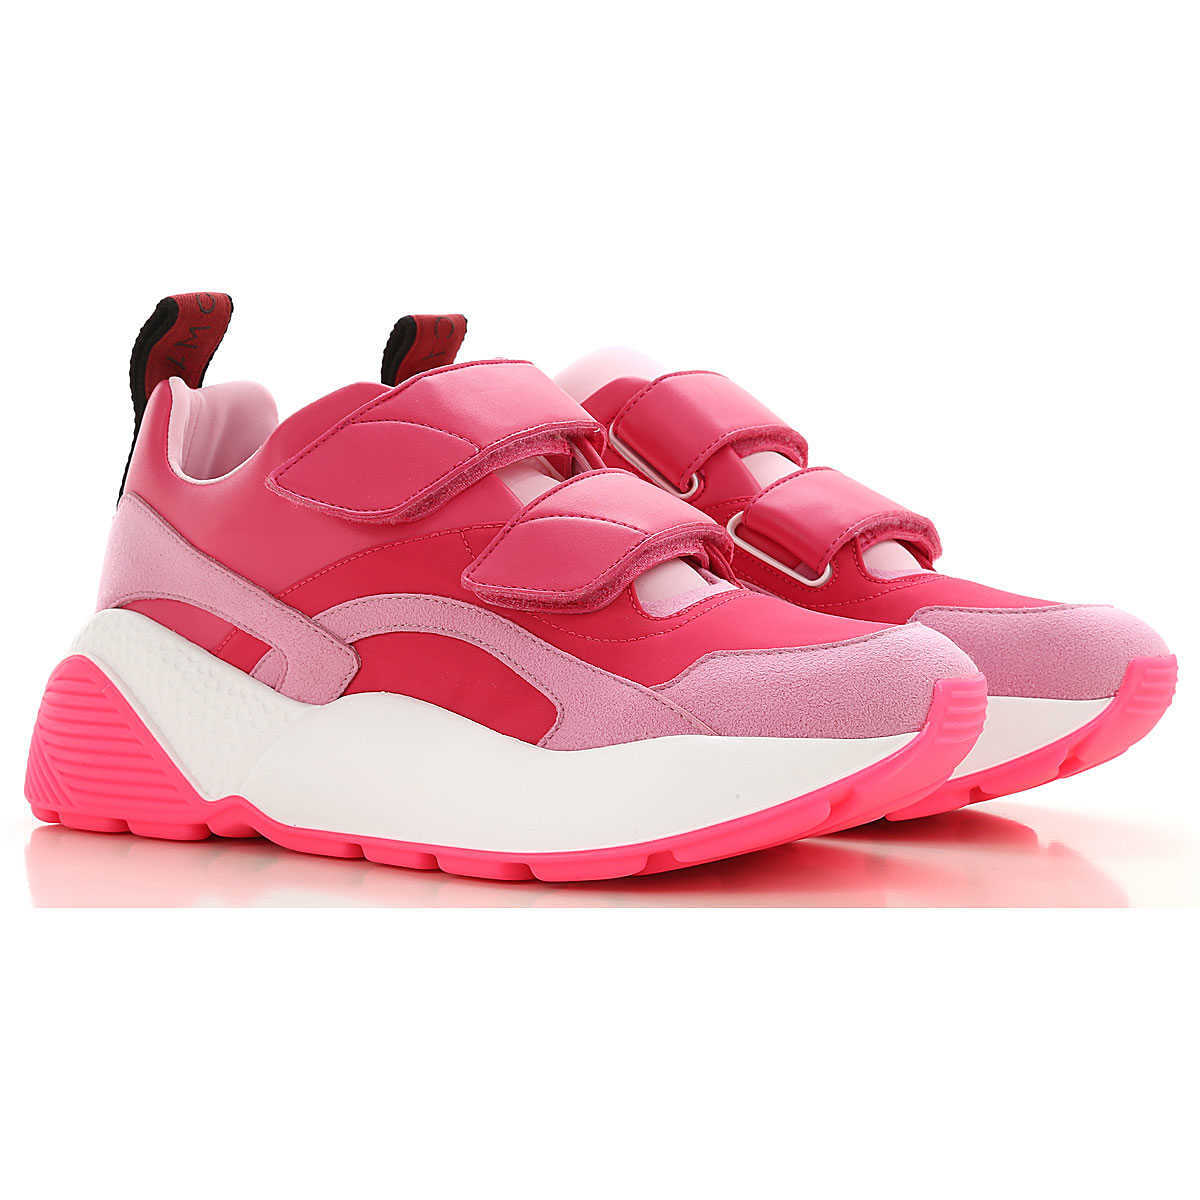 Stella McCartney Sneakers for Women On Sale fuxia DK - GOOFASH - Womens SNEAKER